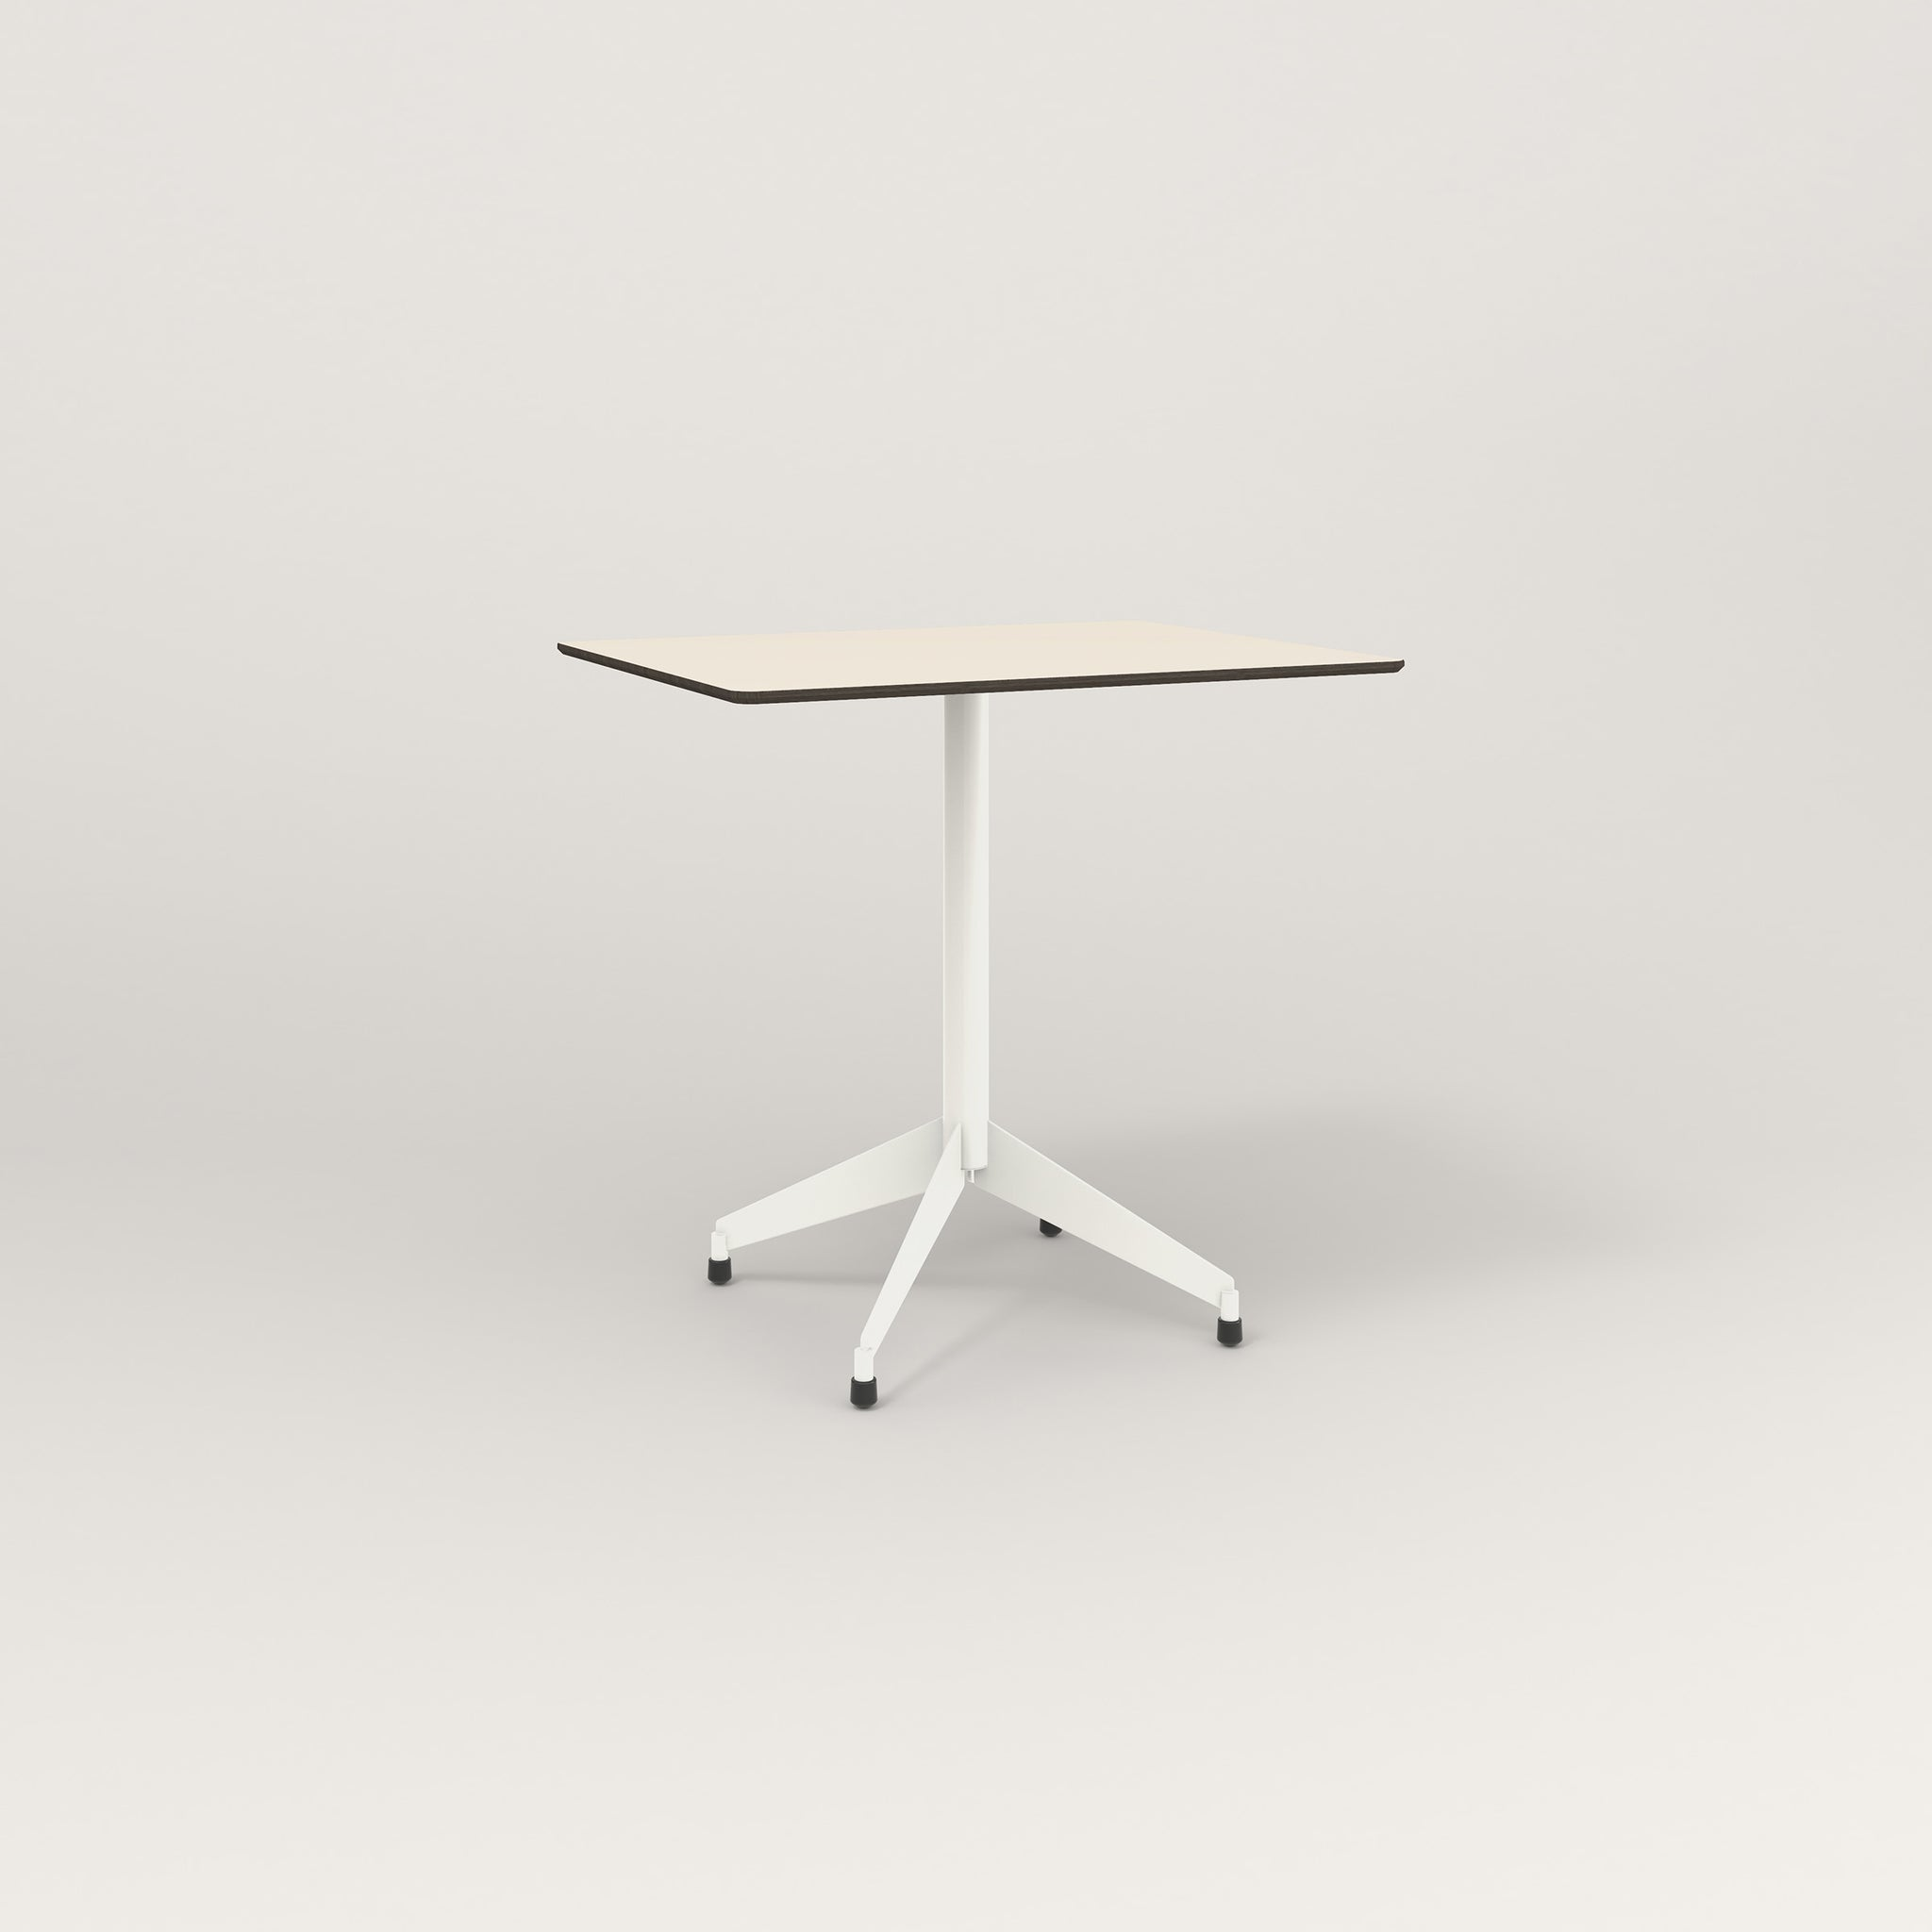 RAD Cafe Table, Rectangular Flat Four Point Base in hpl and white powder coat.